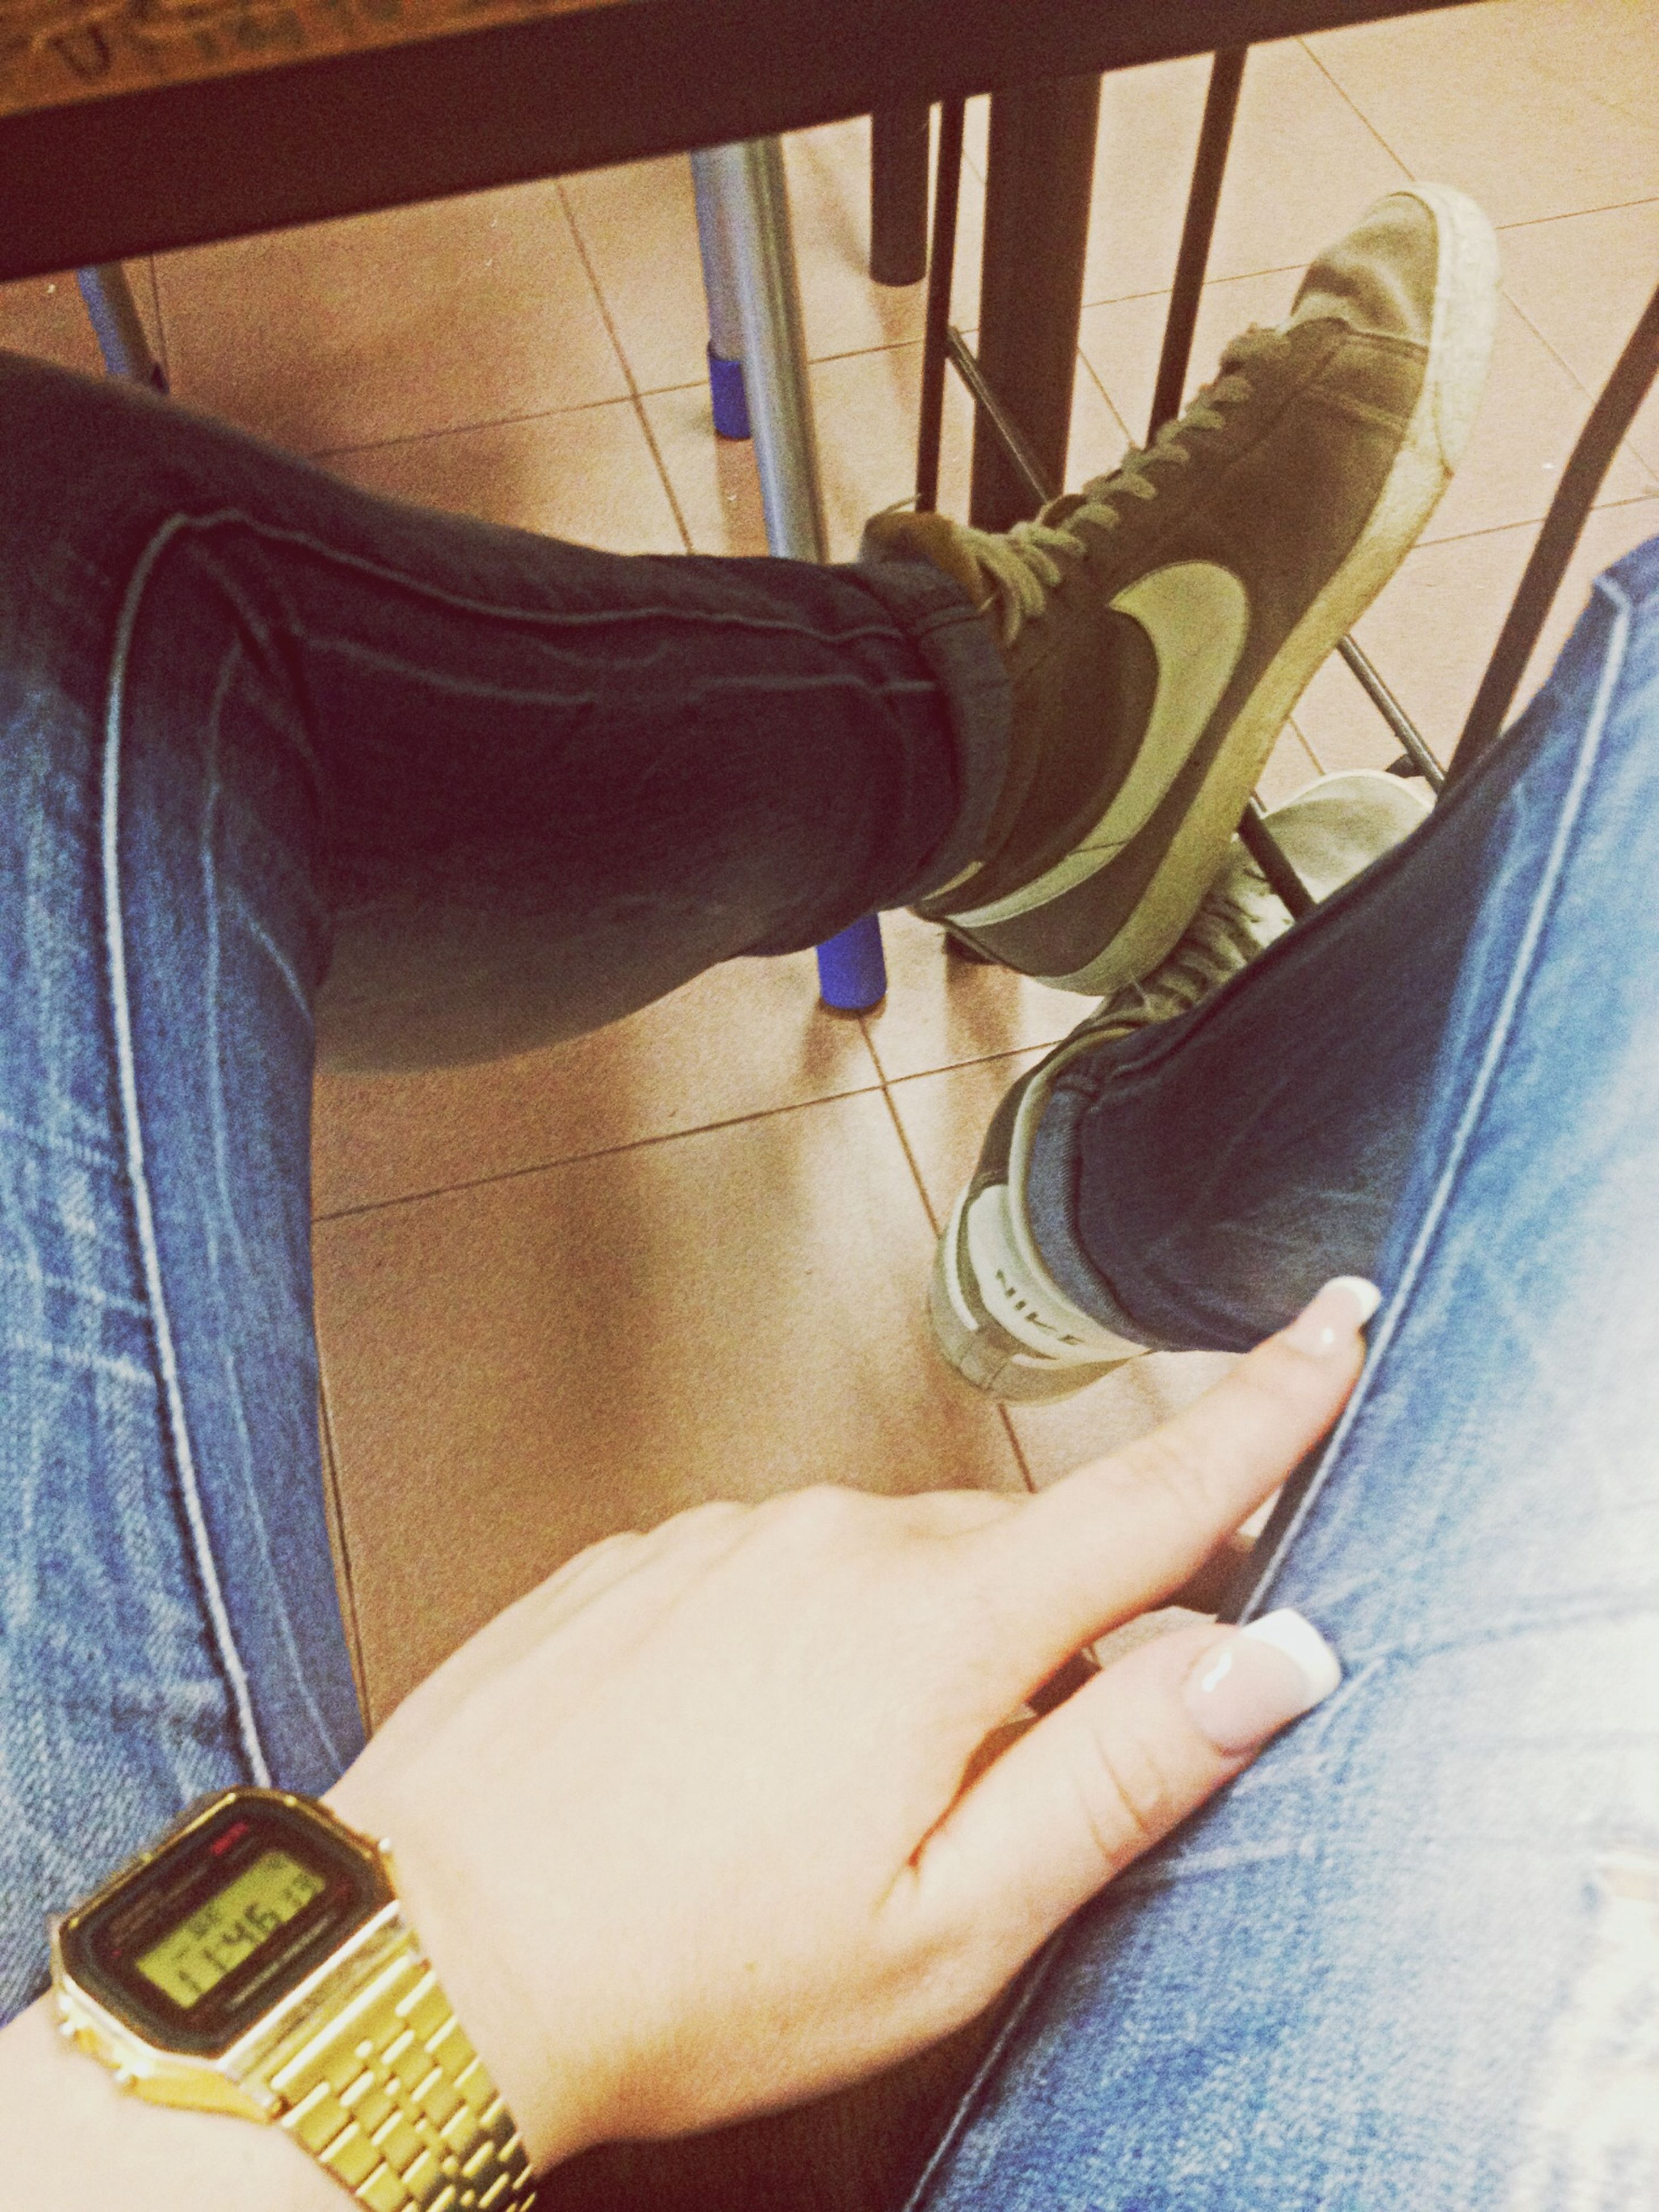 low section, person, indoors, shoe, lifestyles, men, personal perspective, jeans, sitting, footwear, human foot, leisure activity, part of, legs crossed at ankle, casual clothing, standing, fashion